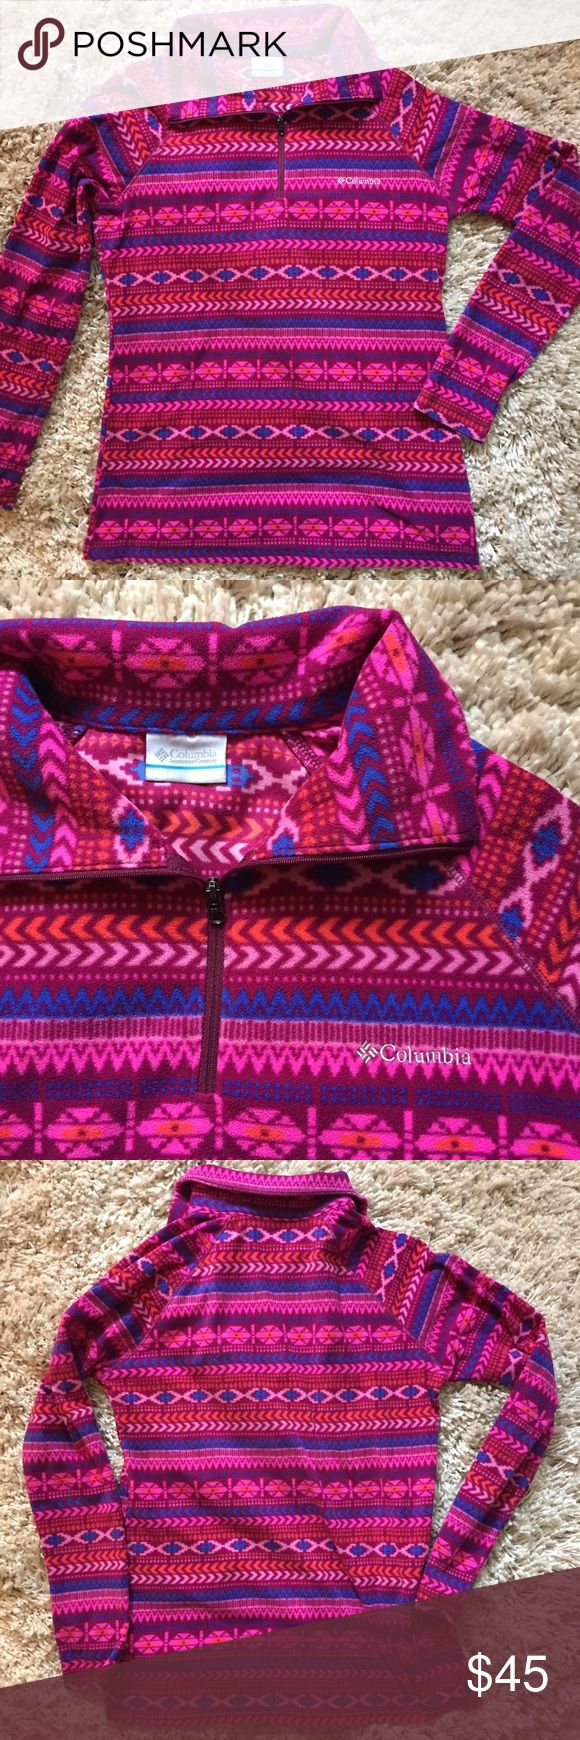 Like 🆕 Columbia Half Zip, Size MED + Aztec-like pattern  + 100% polyester  + Great for fall 🍁🍂 + Don't forget to bundle!   ⭐️All items are steamed cleaned and shipped within 48 hours of your purchase.   ⭐️If you would like any additional photos or have any questions please let me know.  ⭐️Sorry, no trades. But will listen to ALL fair offers. Thanks for shopping! Columbia Sweaters